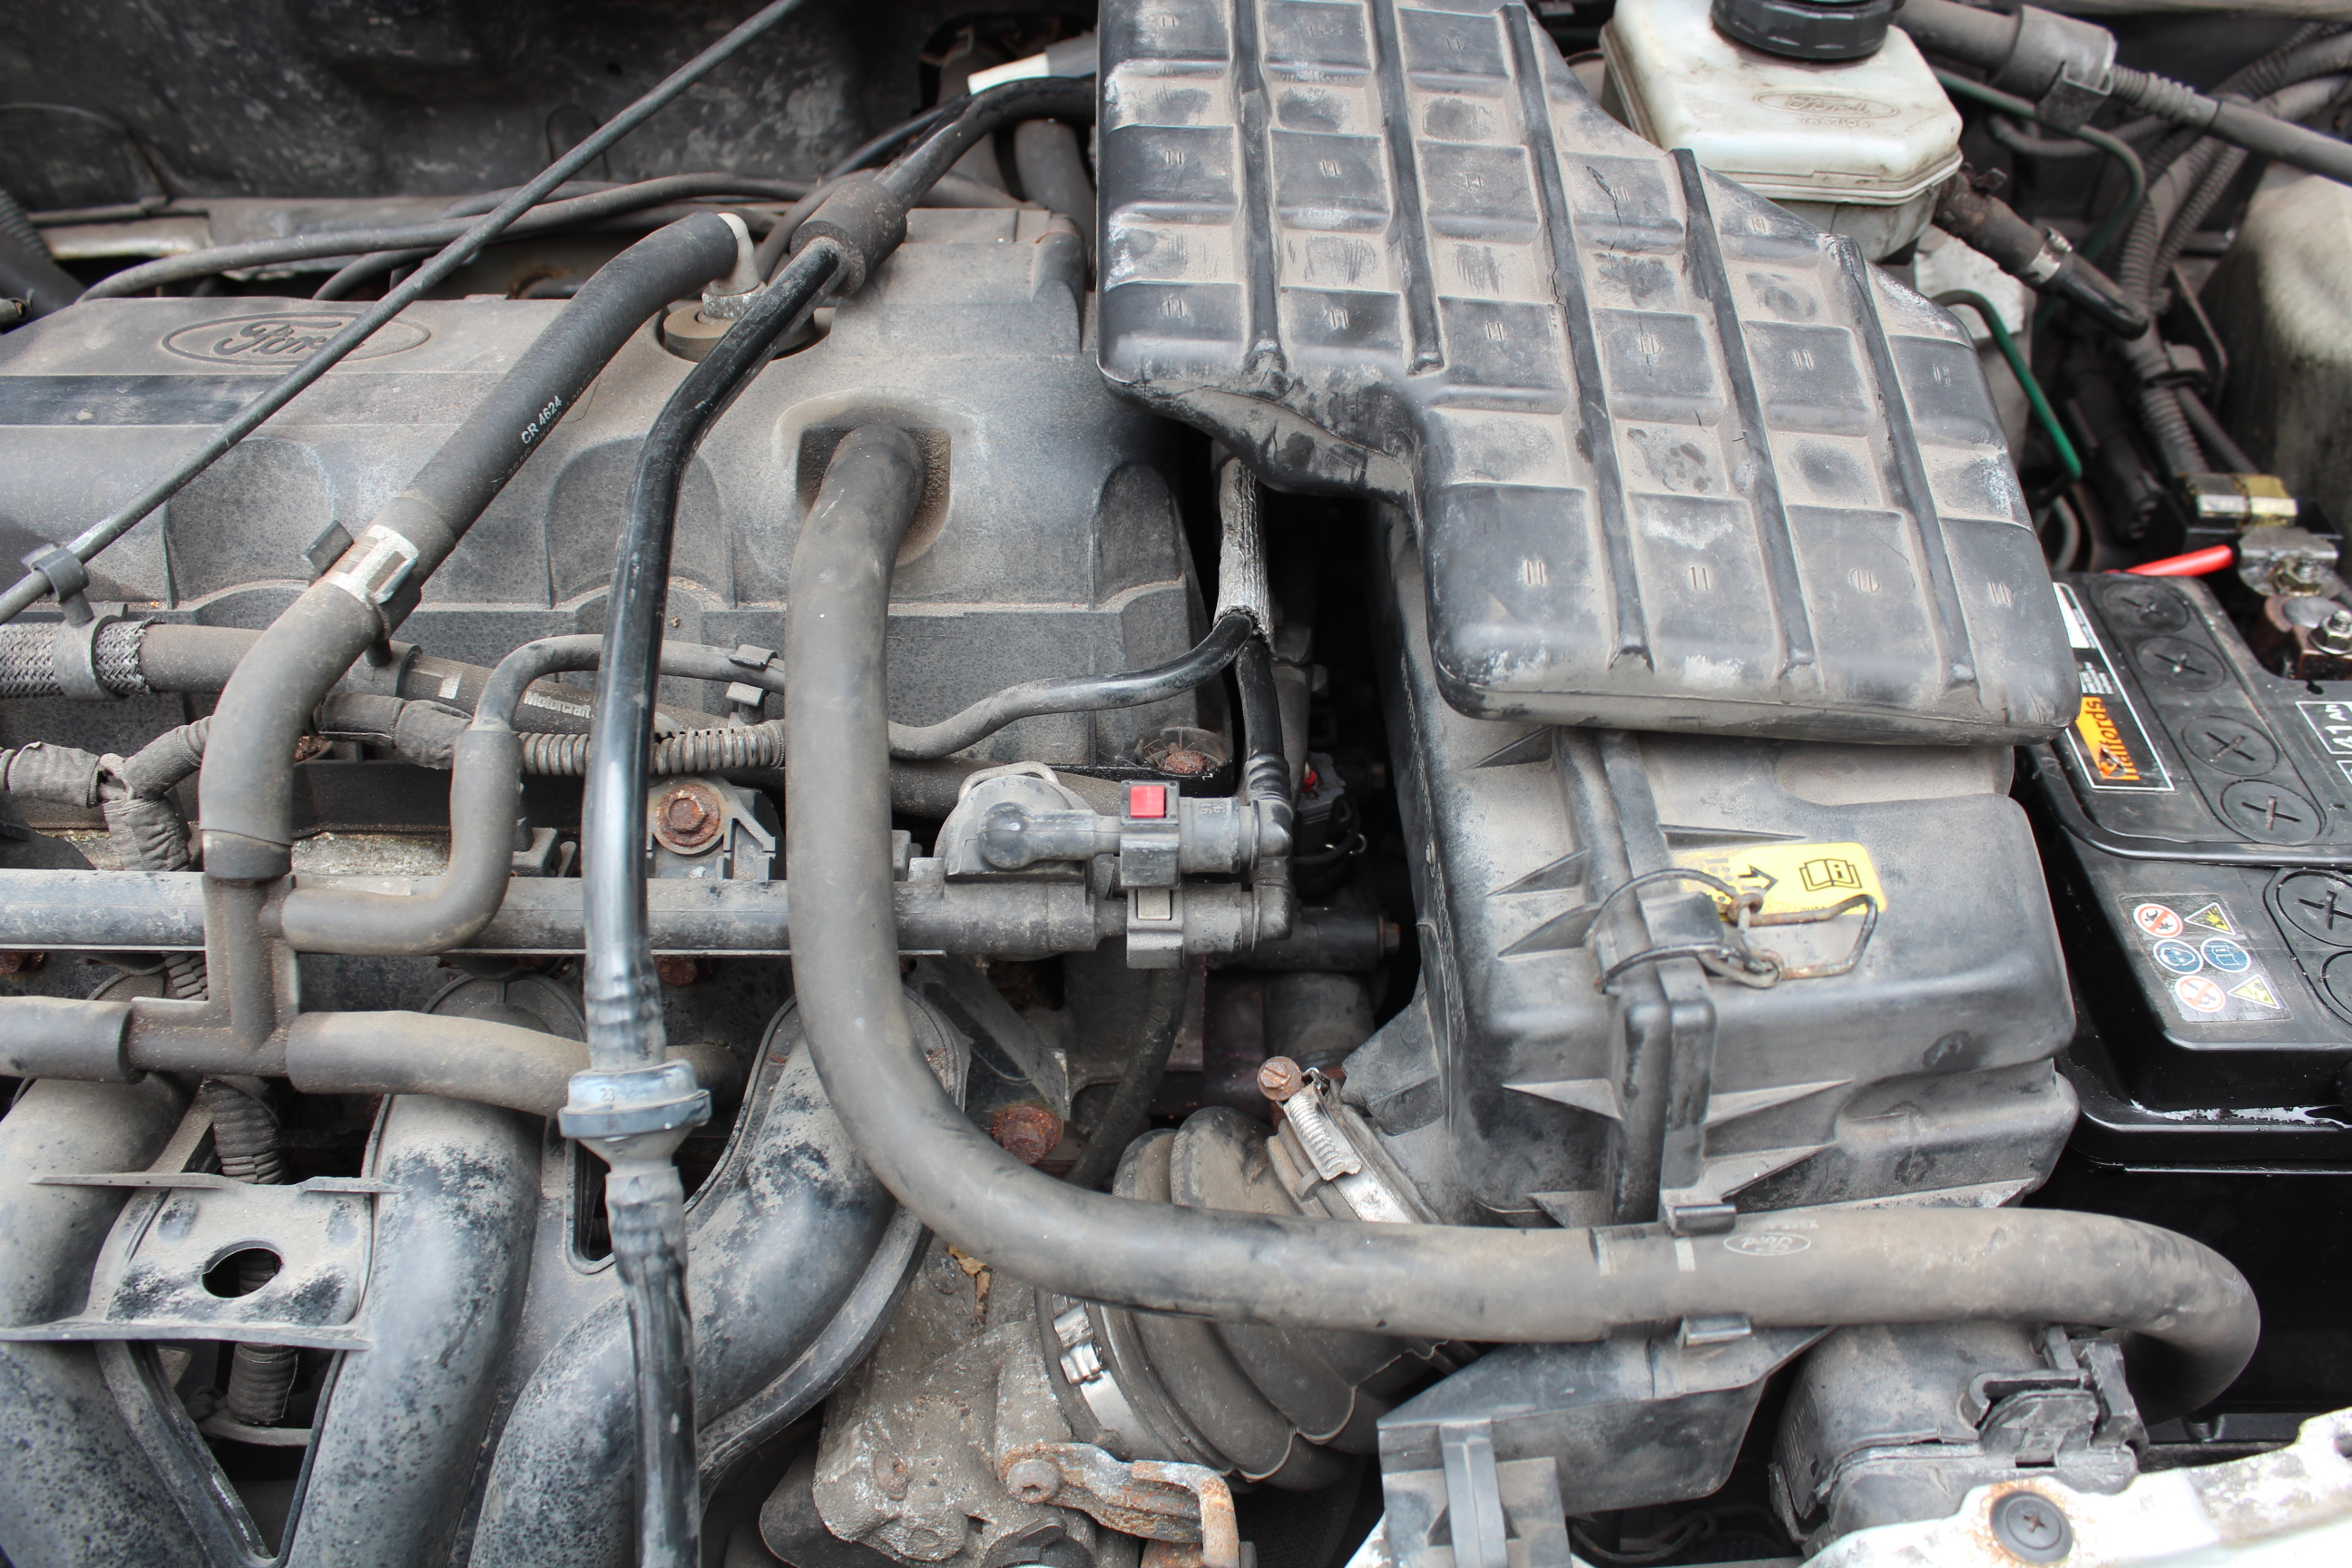 D Mustang Coolant Tempature Sensor Problem Temperature Sending Unit additionally Ect Iatresistancechart further Correct Fan Switch Location E furthermore Ford Focus Electric Upper Hv Battery Disconnect Extrication Safety in addition Maxresdefault. on ford coolant temperature sensor location